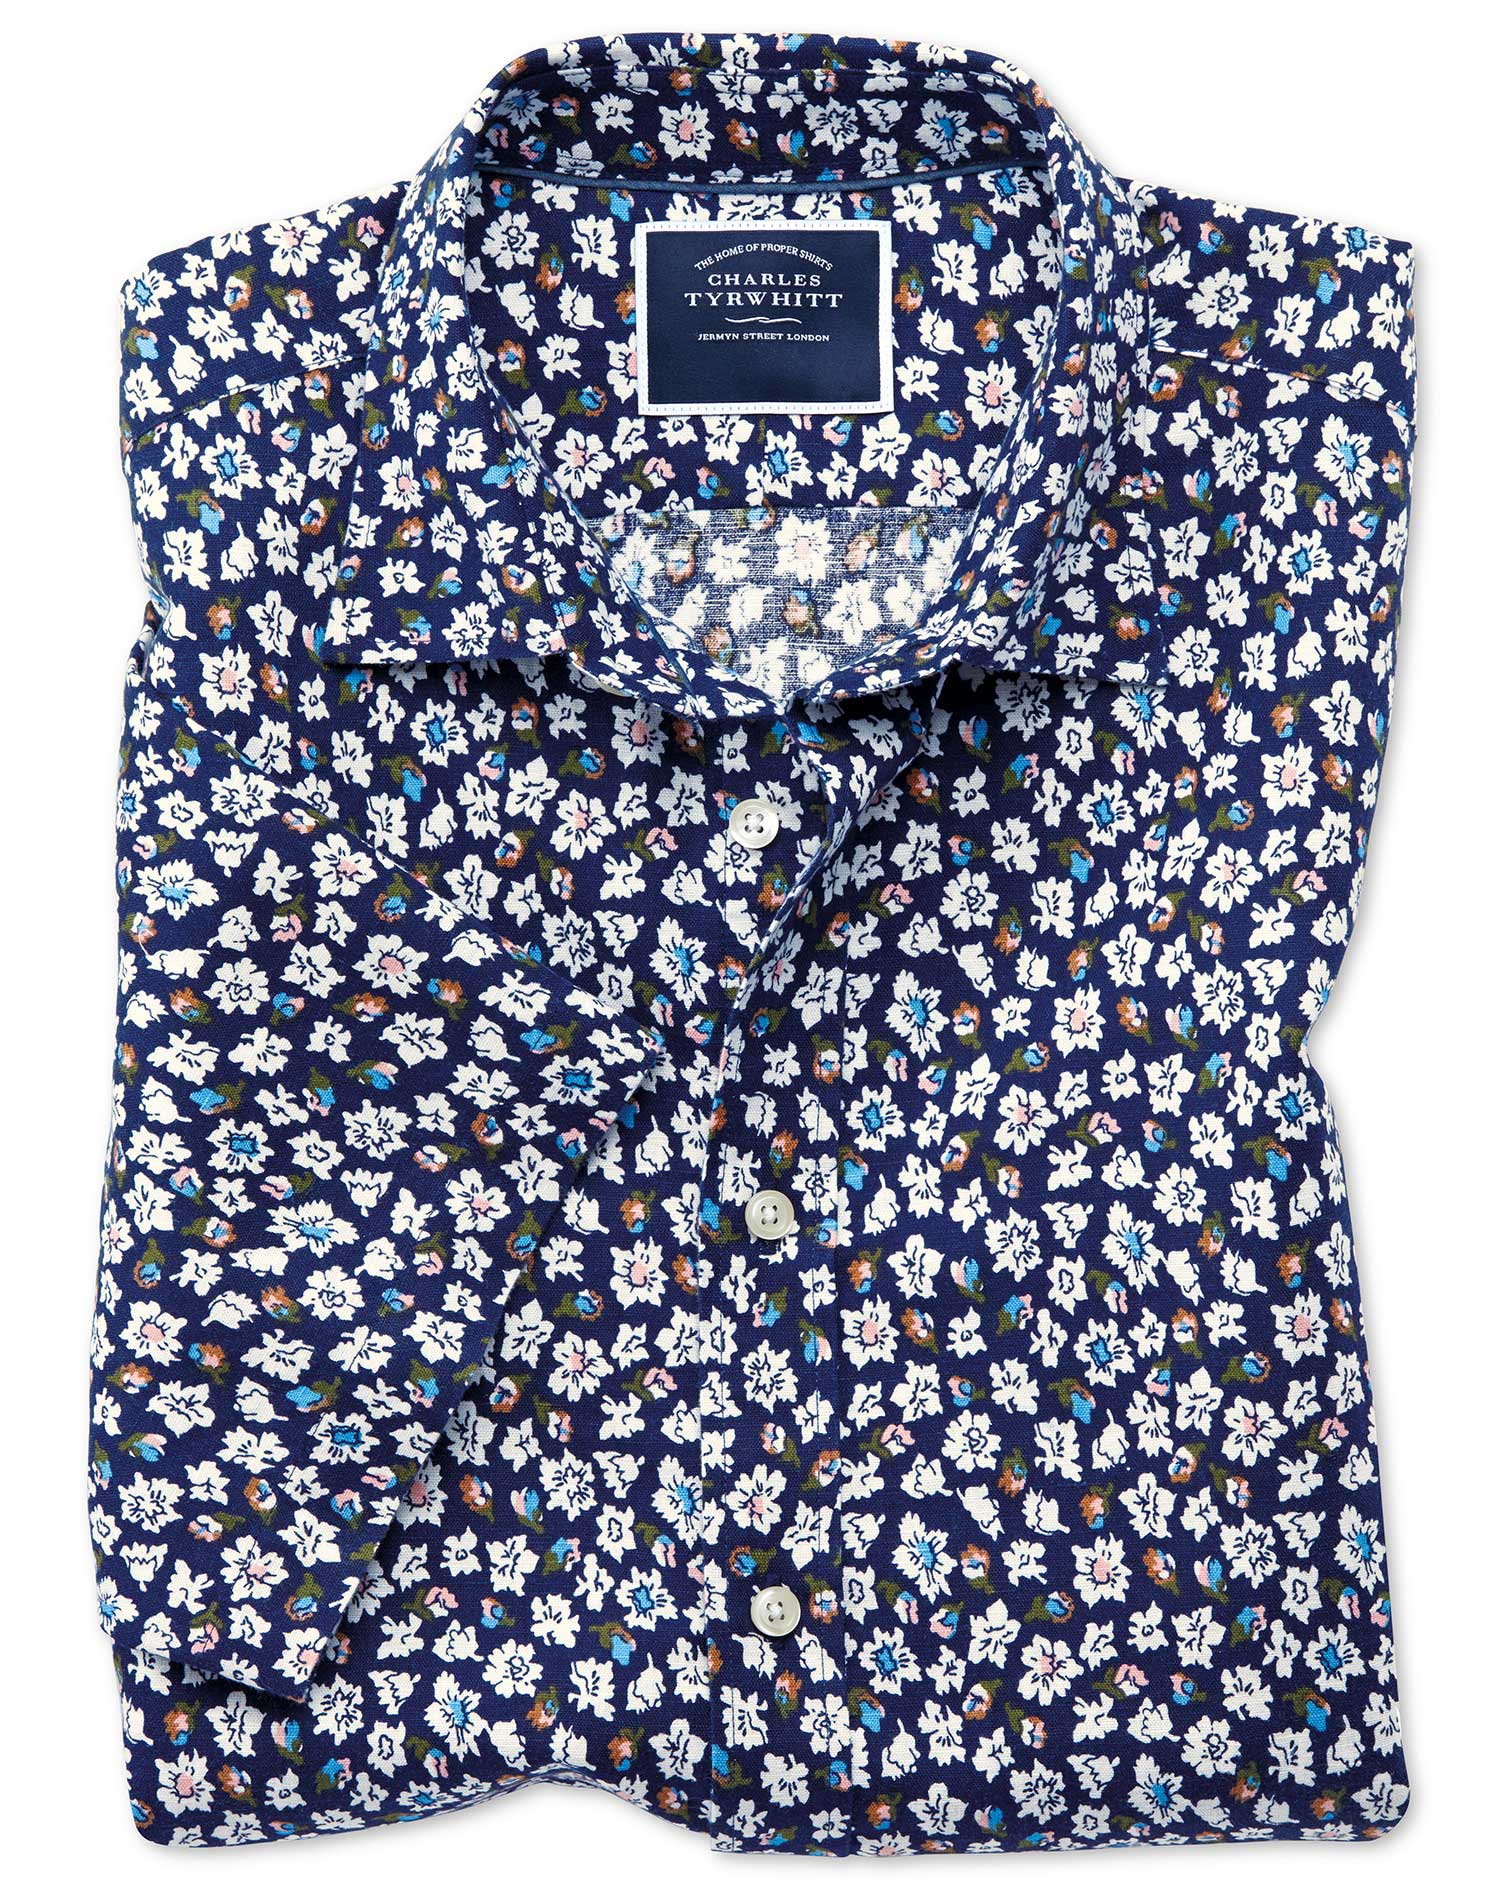 Classic Fit Floral Print Navy Short Sleeve Linen Cotton Shirt Single Cuff Size Large by Charles Tyrw